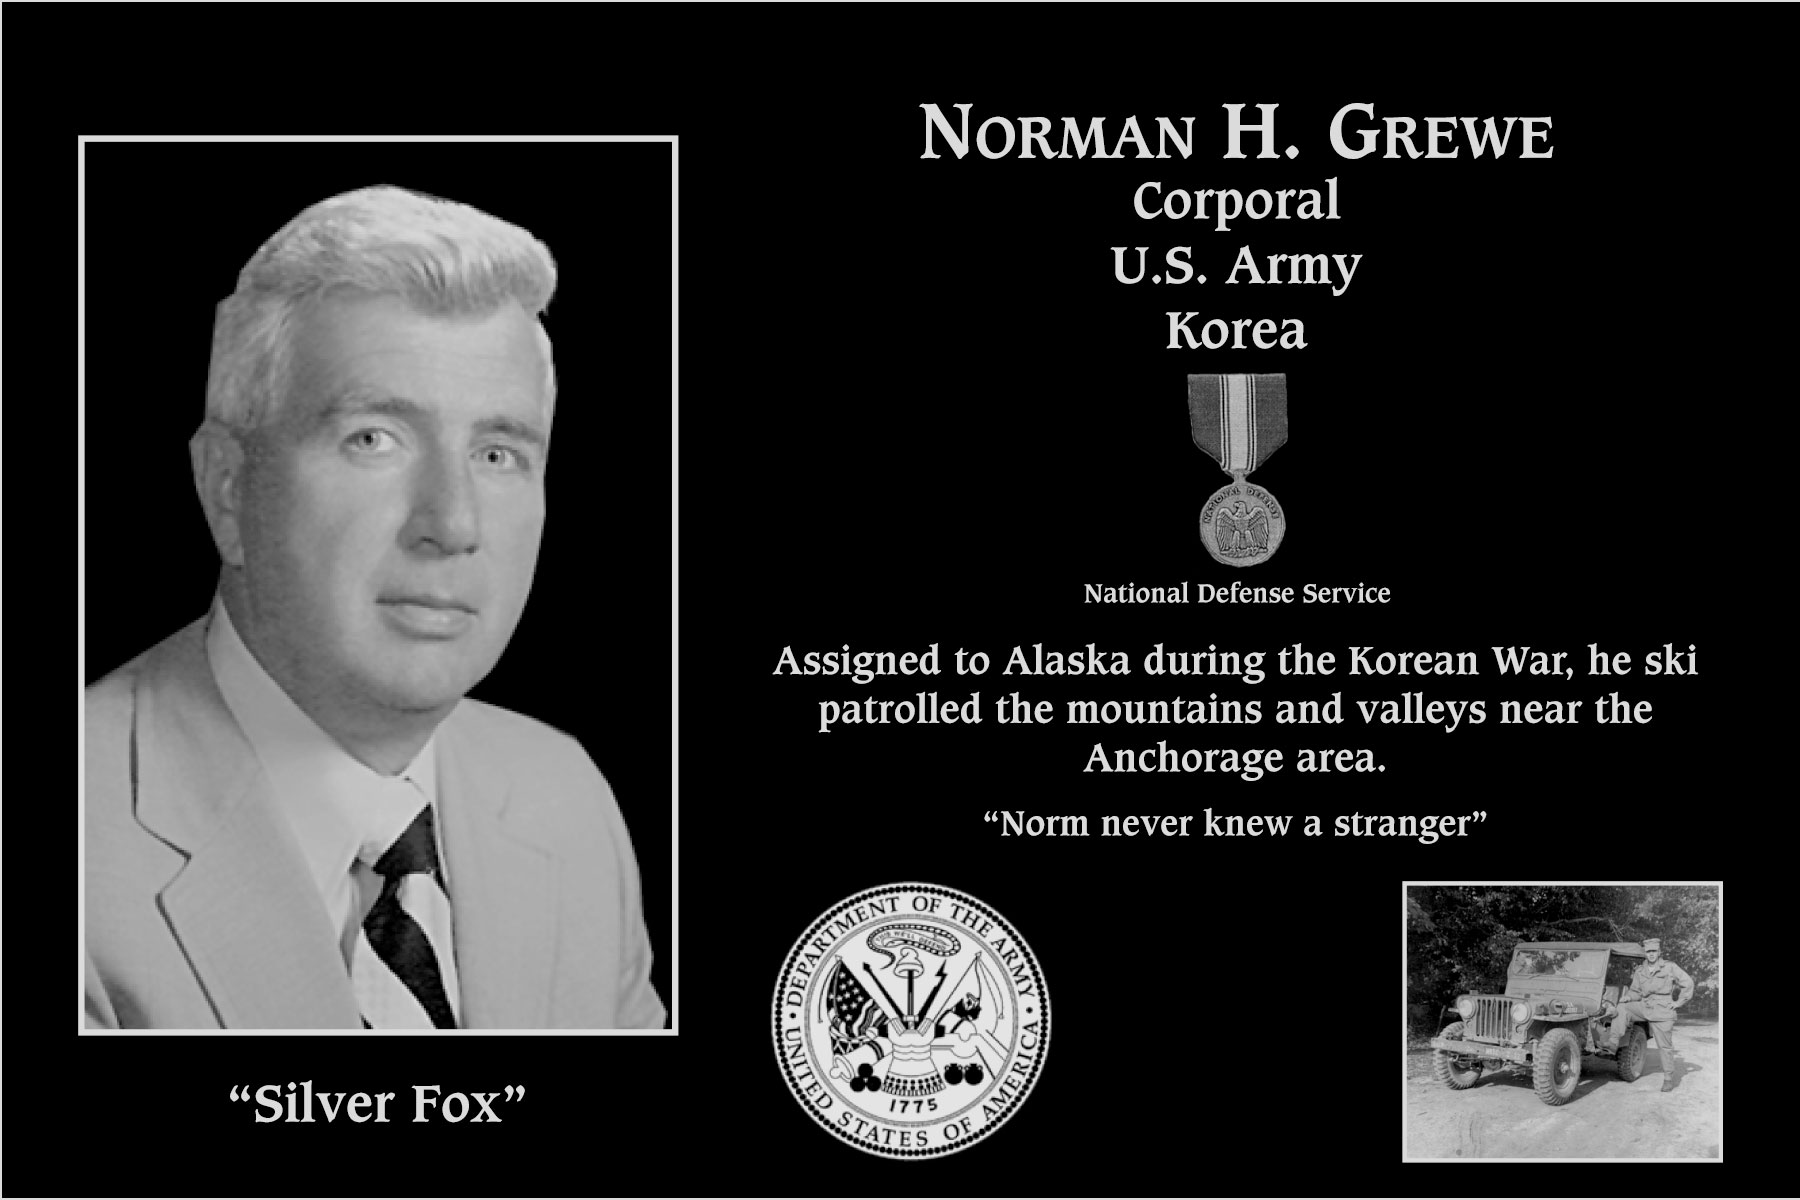 Norman H. Grewe